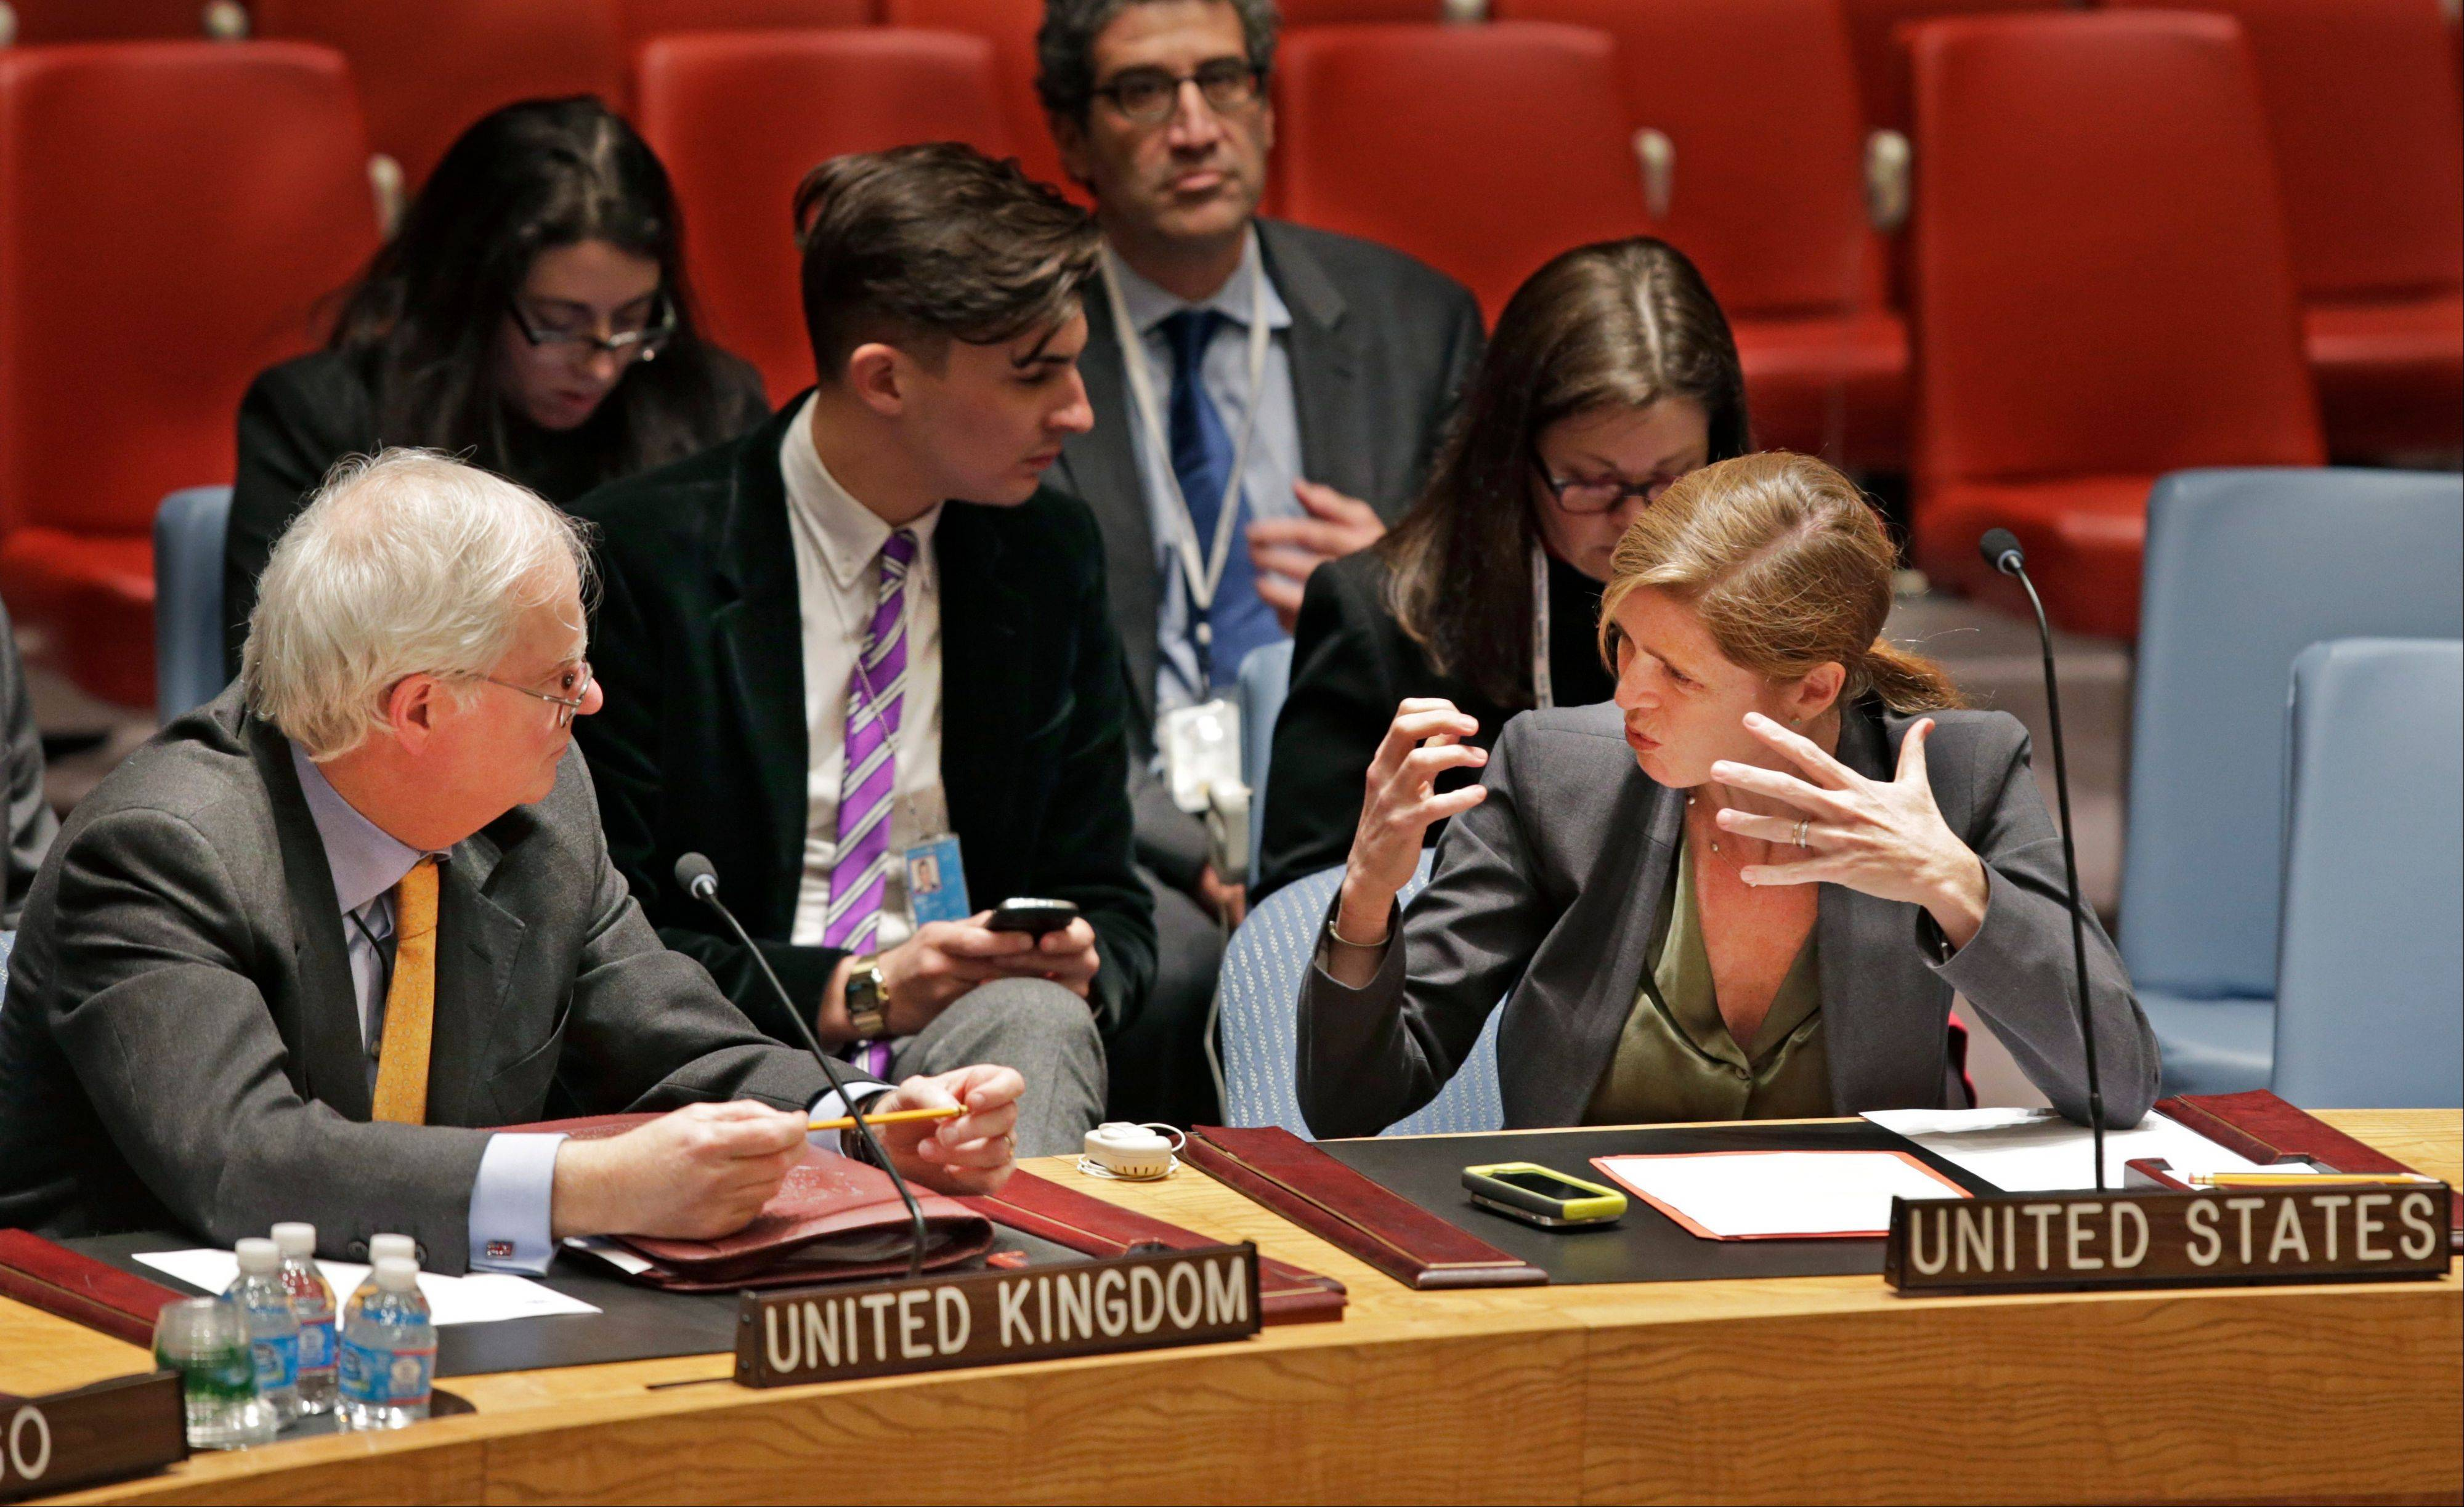 Great Britain's U.N. Ambassador Mark Lyall Grant, left, listens to Samantha Power, the United States U.N. Ambassador, before a United Nations Security Council meeting Tuesday at U.N. headquarters.